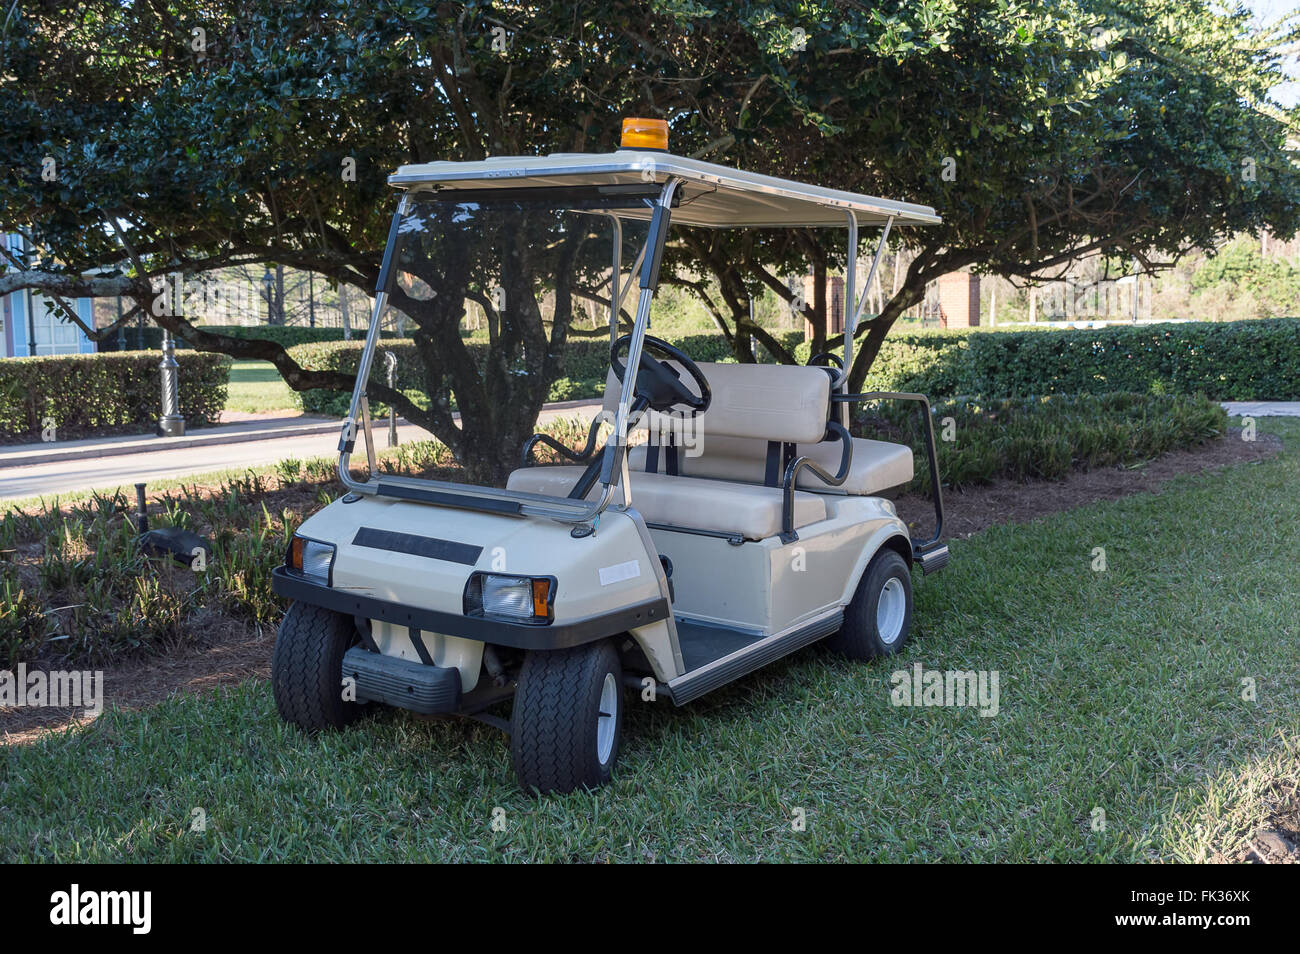 Empty Golf Buggy parked on the grass - Stock Image